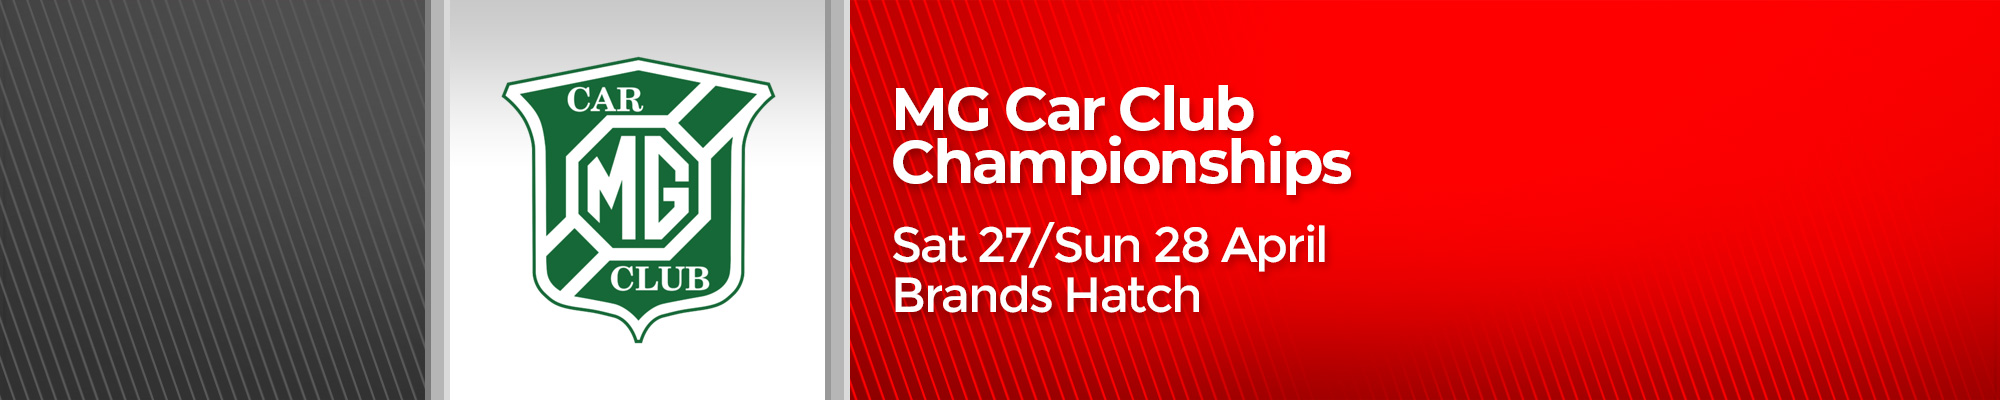 MG Car Club Championships